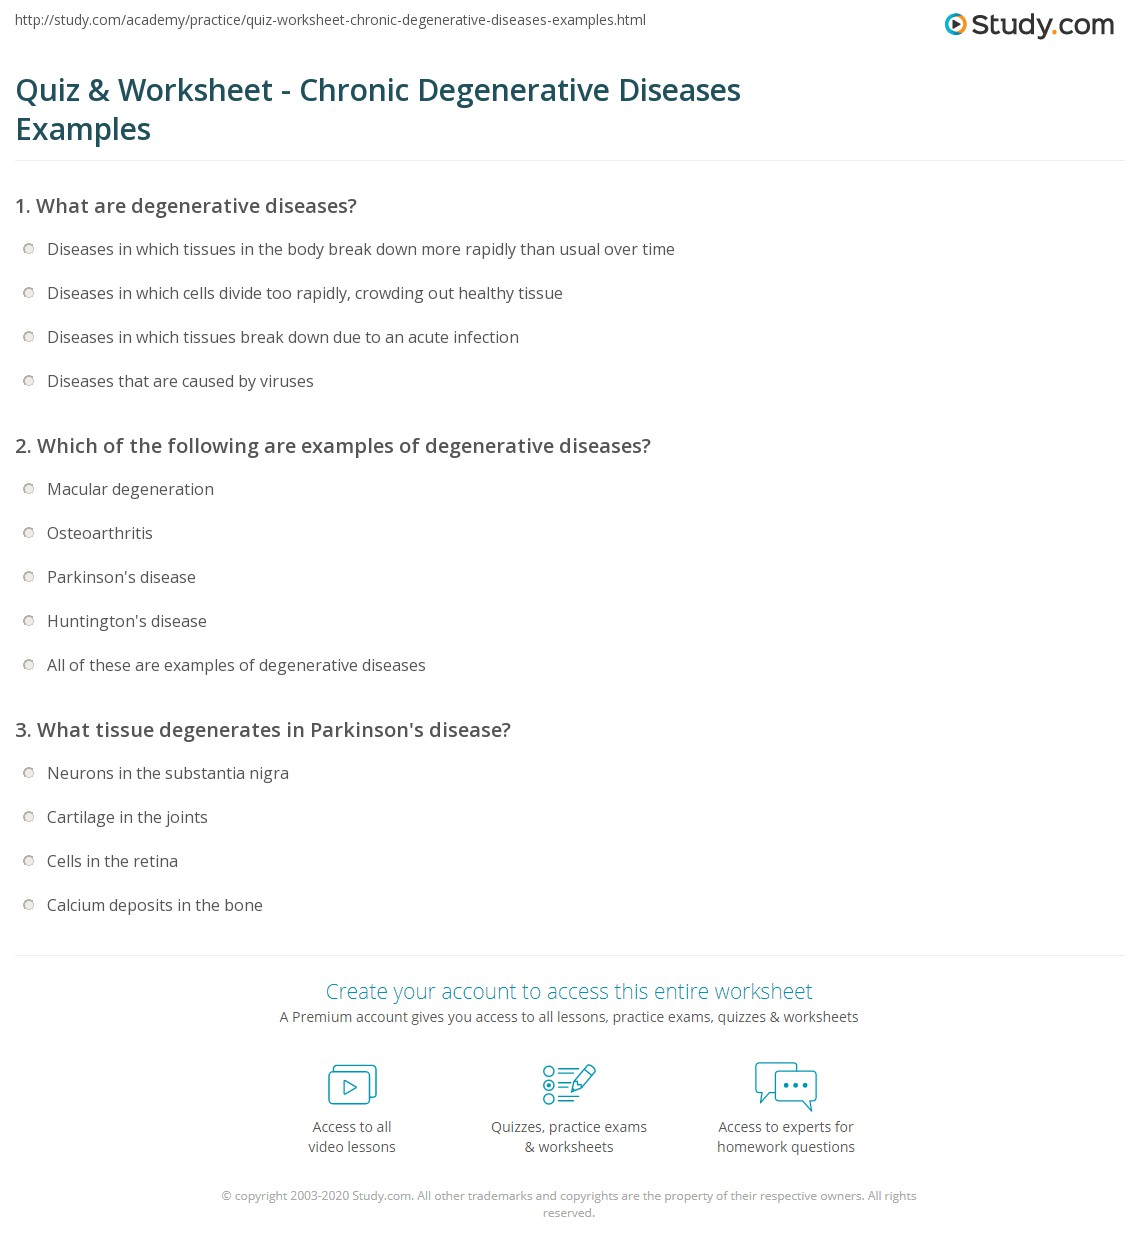 Quiz Worksheet Chronic Degenerative Diseases Examples Study